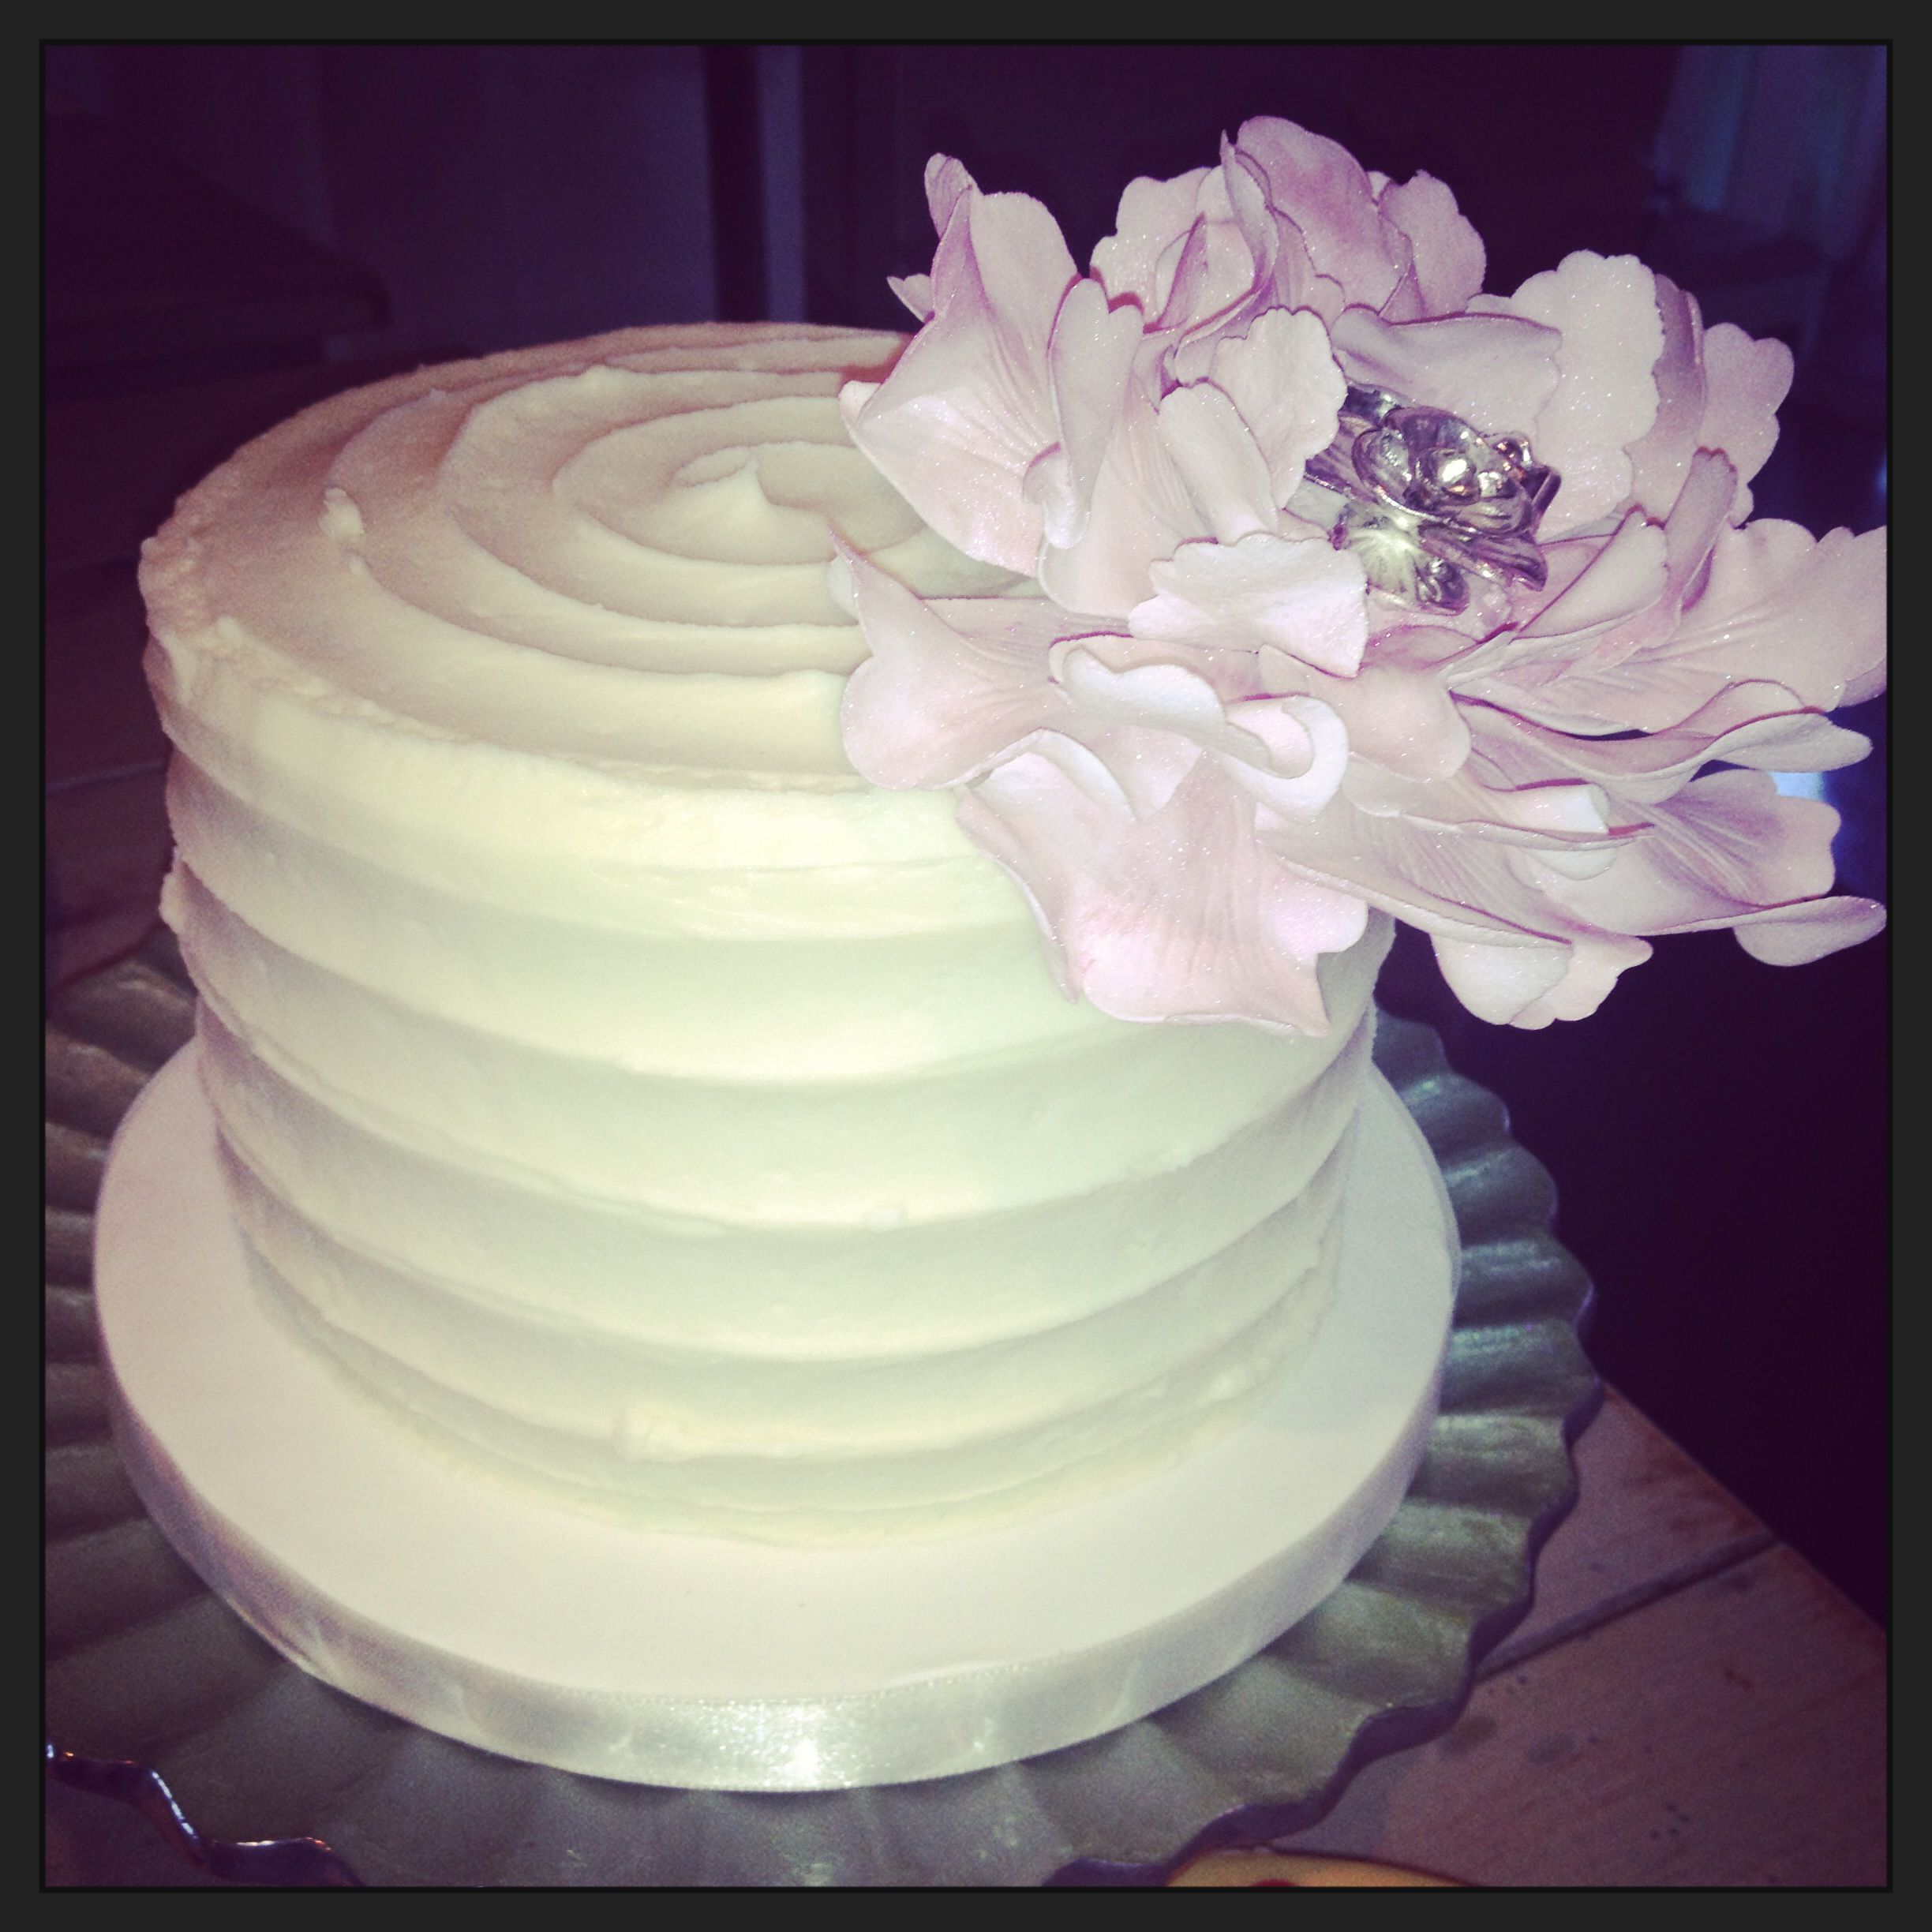 Buttercream Wedding Cakes And Desserts: Simple Buttercream Cake With A Gumpaste Flower.